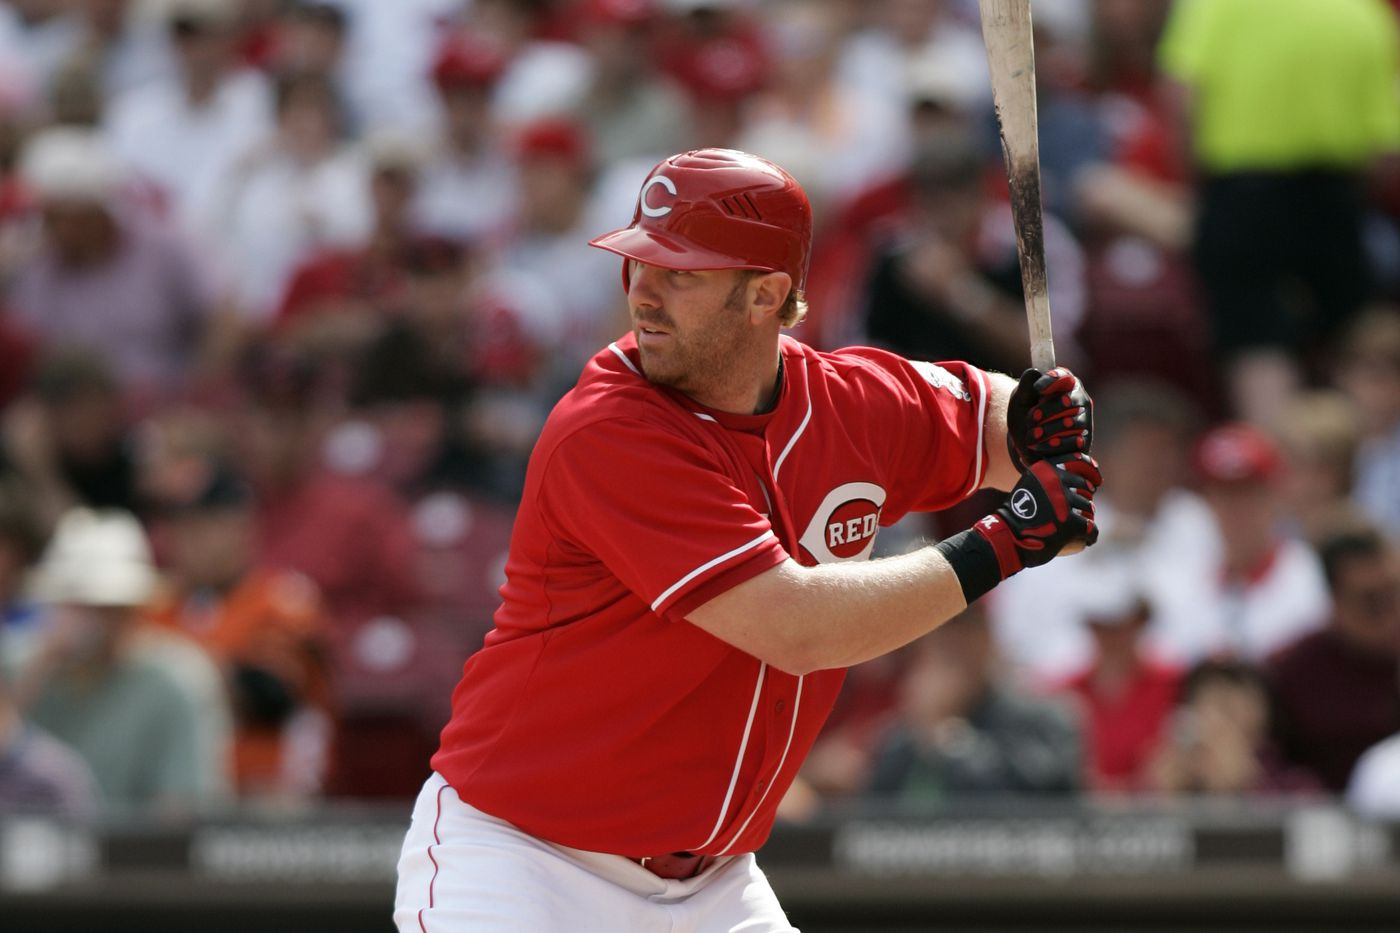 Adam Dunn listed on 2020 Hall of Fame ballot - Red Reporter